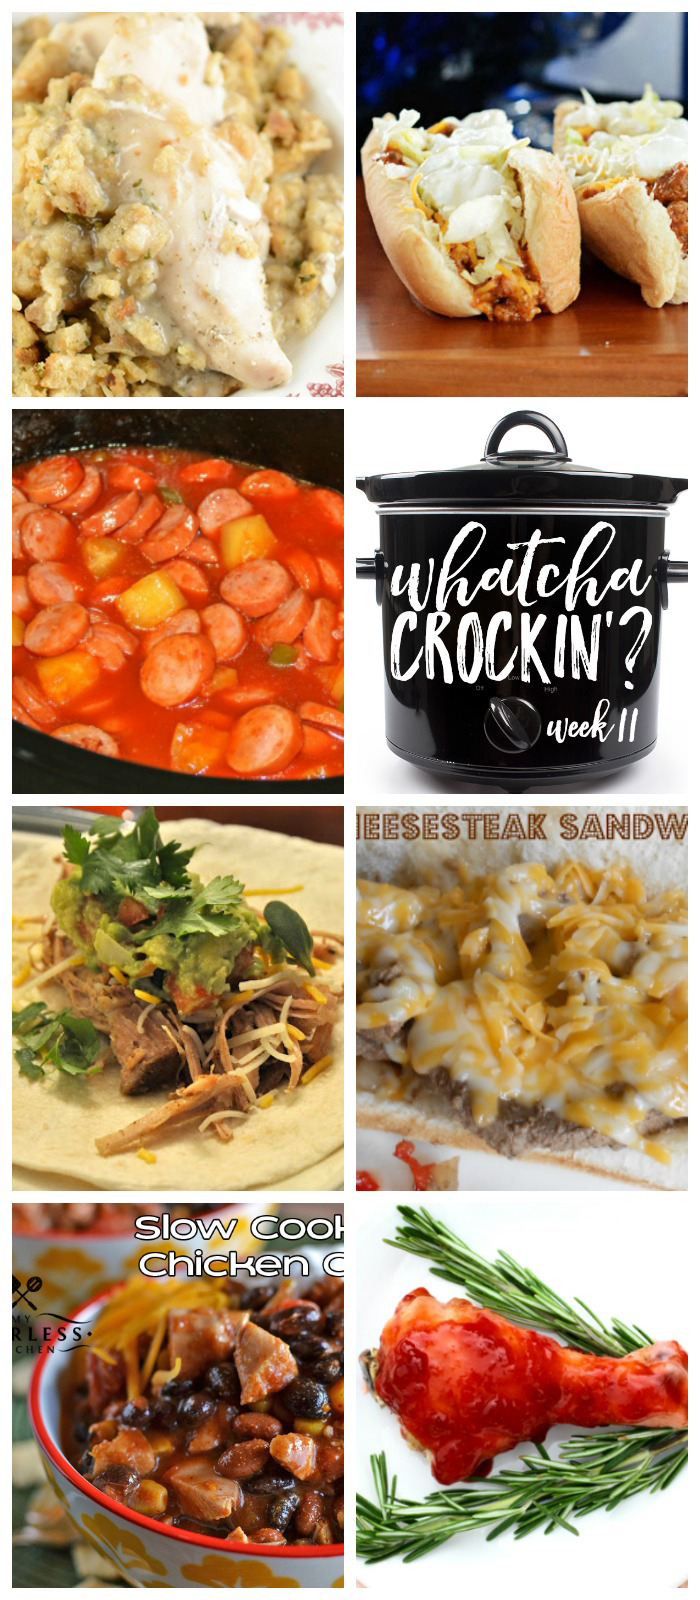 This week's Whatcha Crockin' crock pot recipes include Slow Cooker Cheesesteak Sandwiches, Crock Pot Taco Joes, Slow Cooker Cranberry Chicken Legs, Crock Pot Chicken Stuffing Casserole, Crock Pot Sweet and Sour Smoked Sausage, Crock Pot Pork Carnitas, Slow Cooker Chicken Chili and much more!